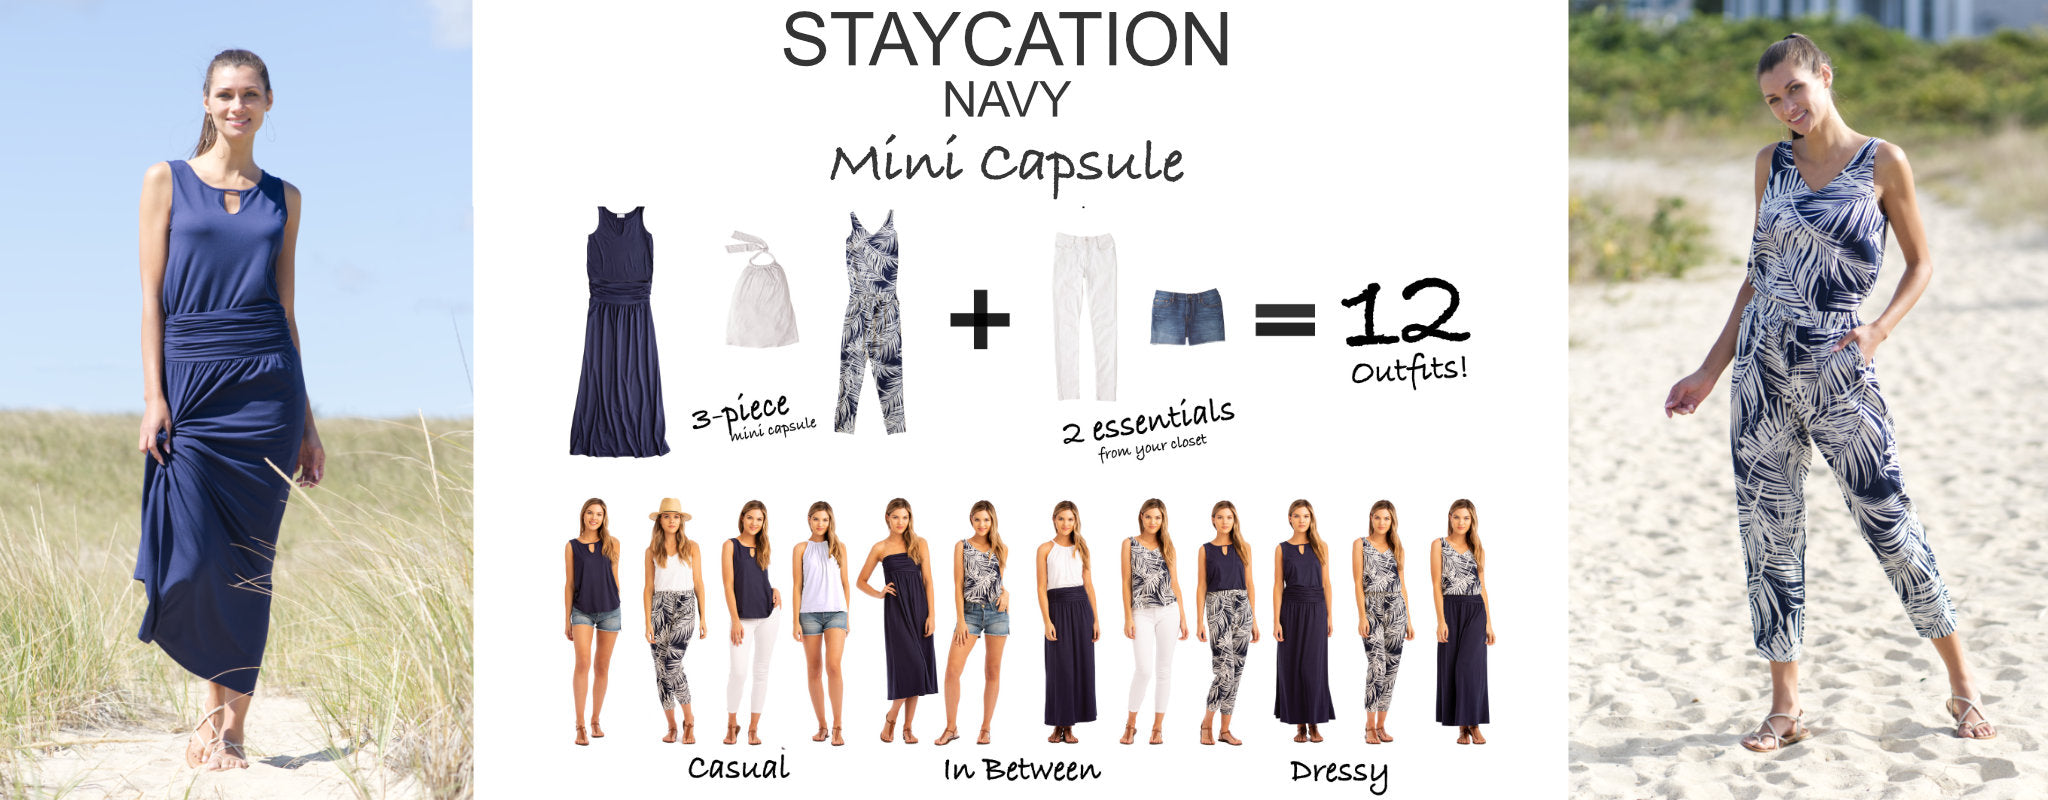 Staycation Mini Capsule navy